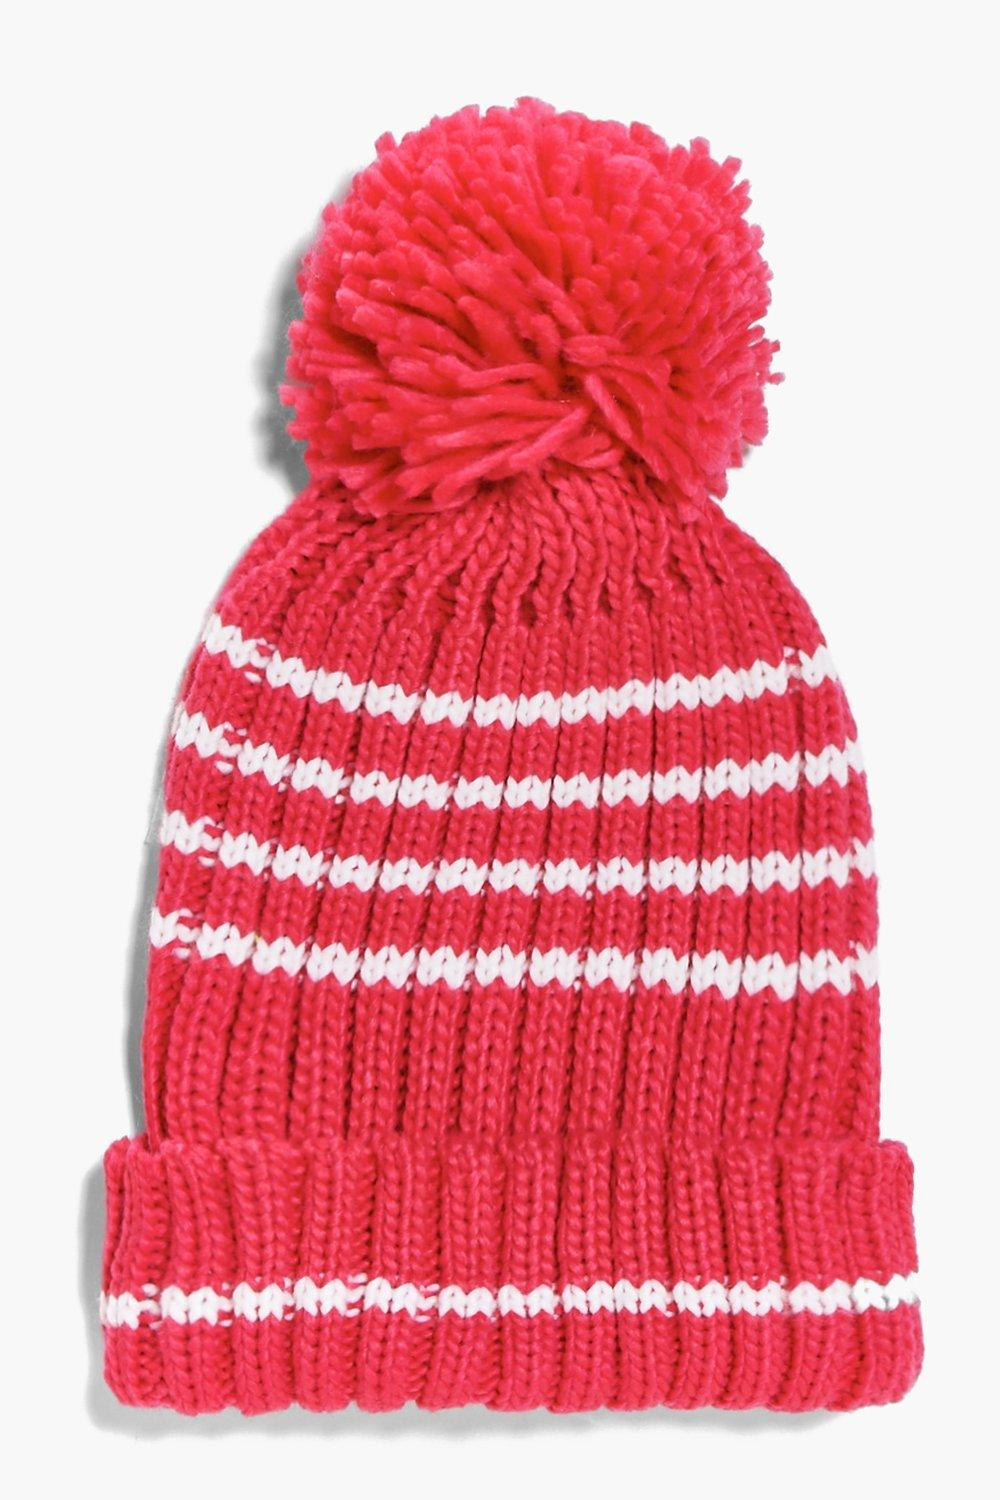 Knitted Pom Pom Hat - raspberry - Girls Knitted Po